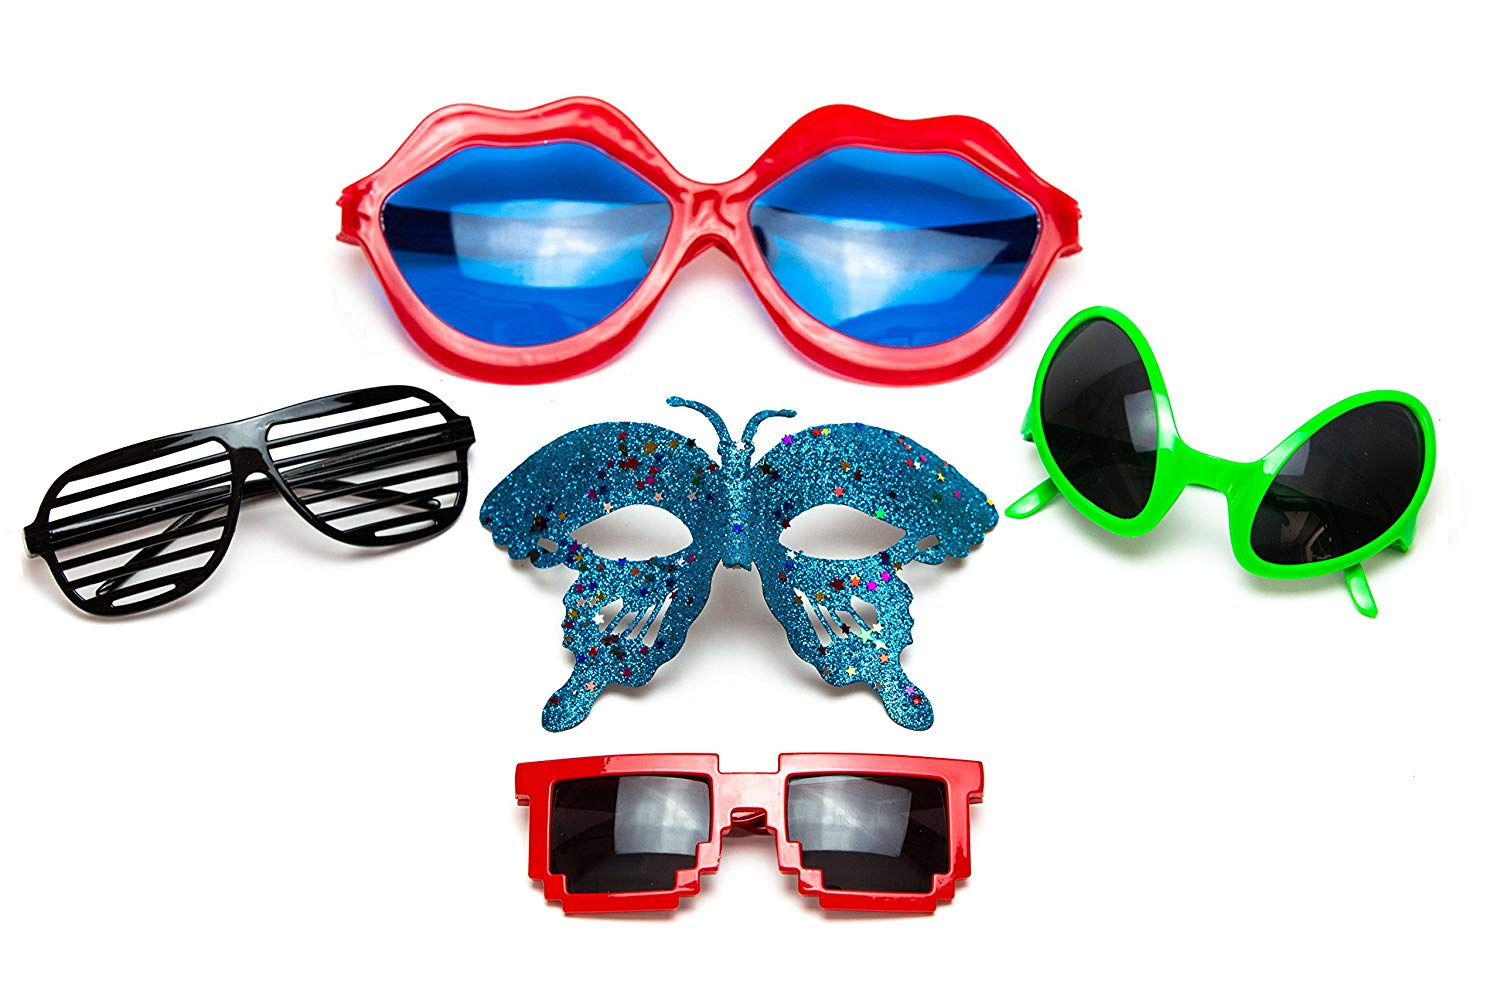 ecd2cf9f7e4 Get Quotations · Funny Sunglasses for Party or Photo Booth - Pack of 5 Cool  Unique Accessories for Kids